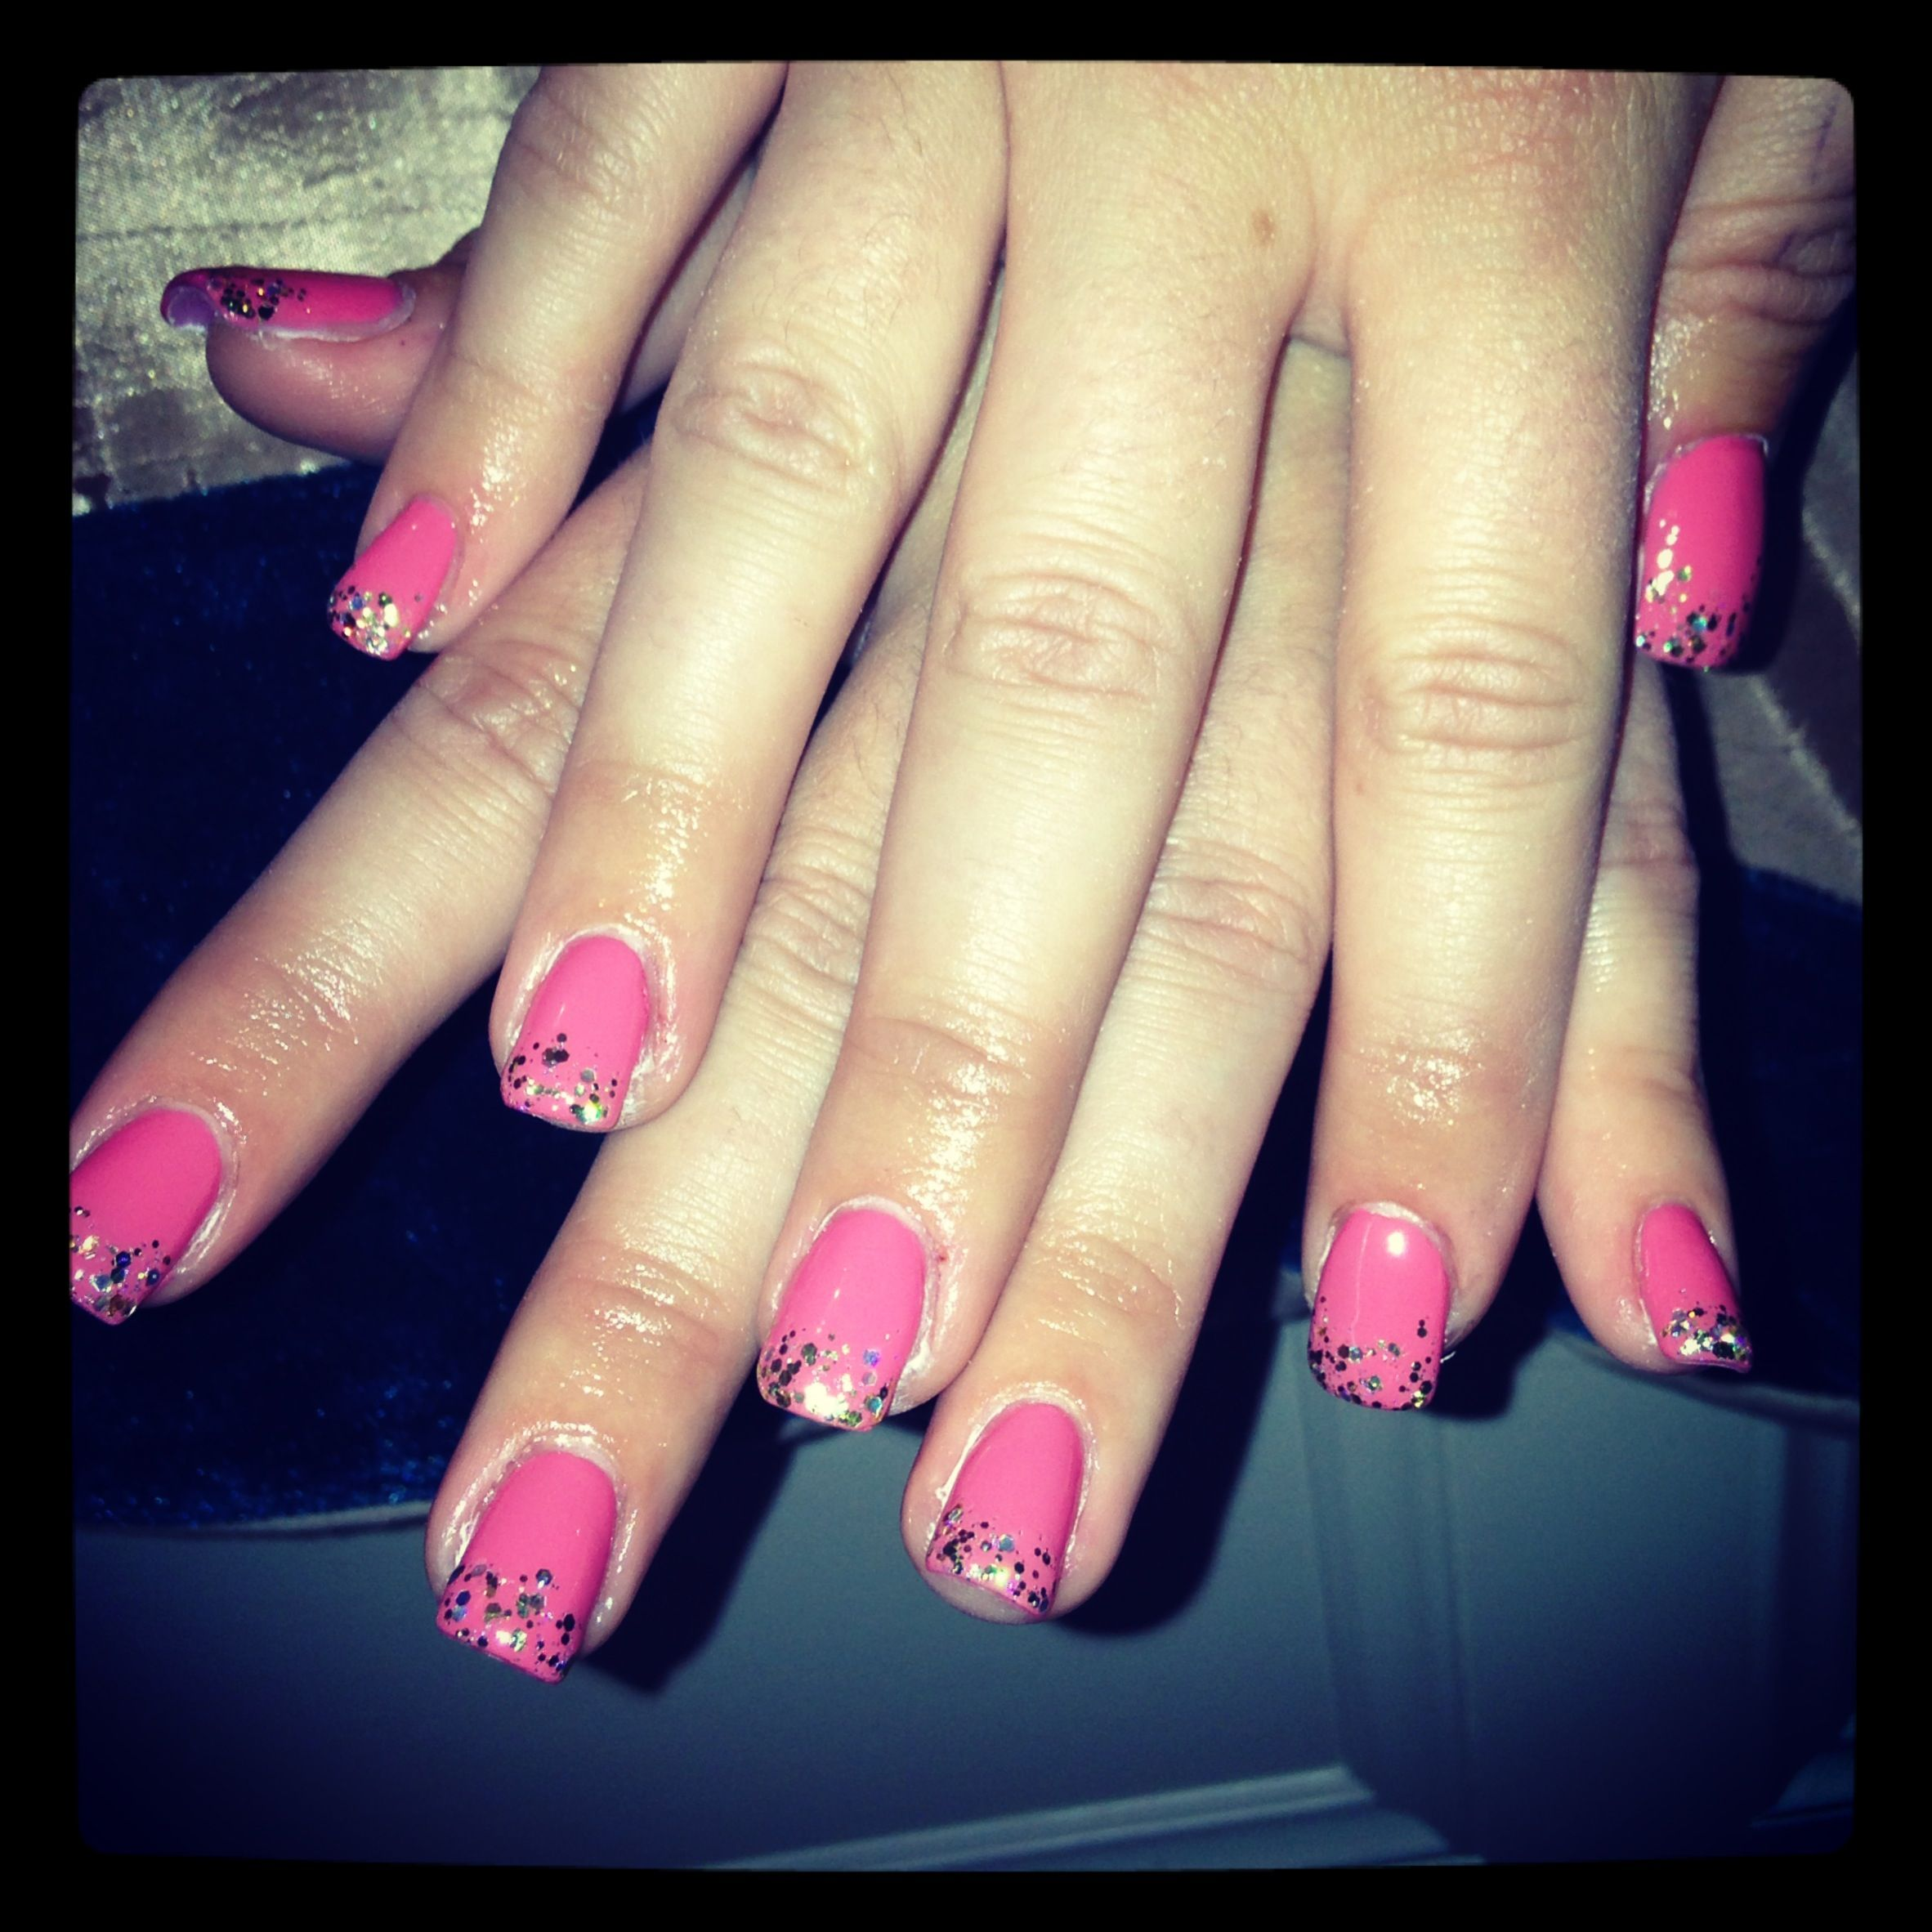 Glitter Nail Ideas For Summer: All Ready For Holiday #summer #nails #acrylics #pink #gold